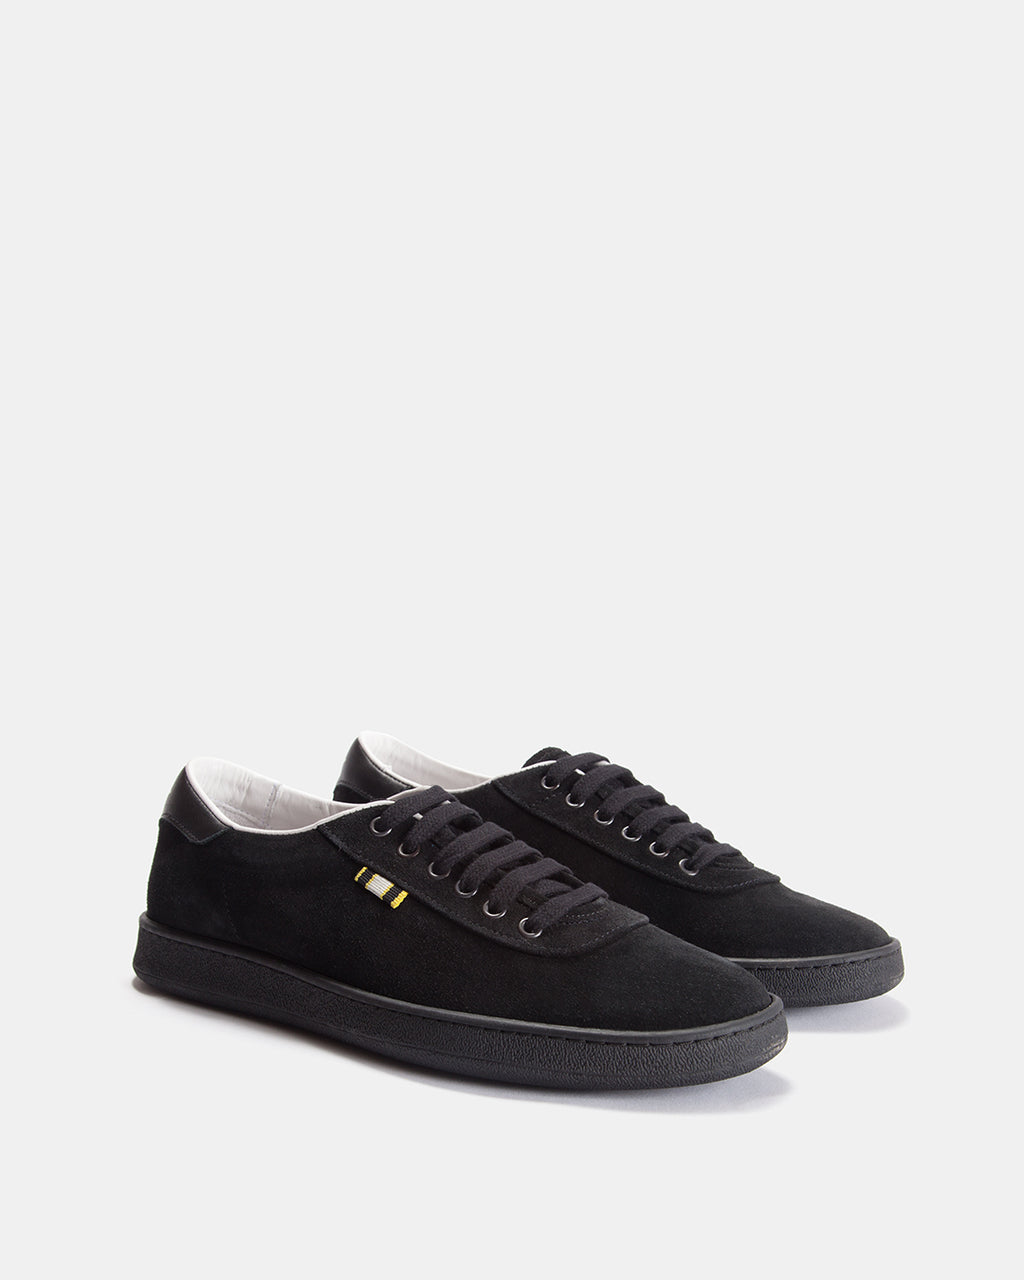 APR002 - Suede - Black/Black